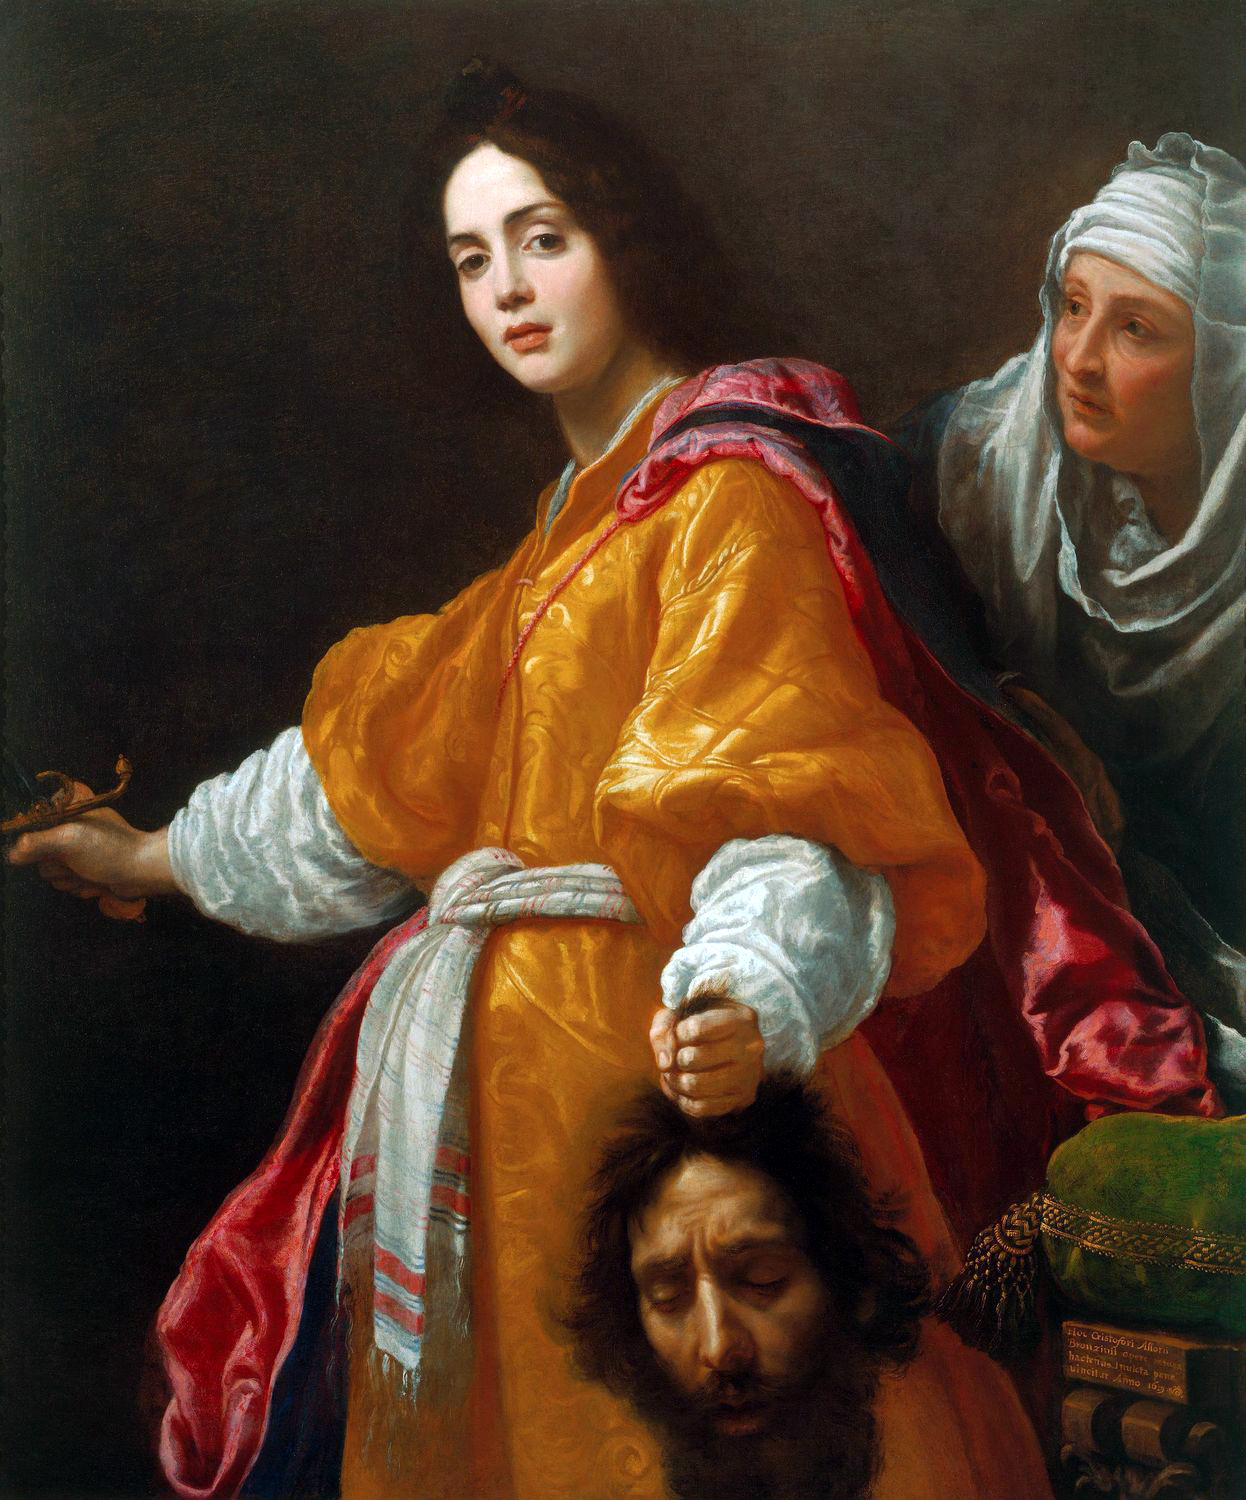 judith_with_the_head_of_holofernes_by_cristofano_allori.jpg